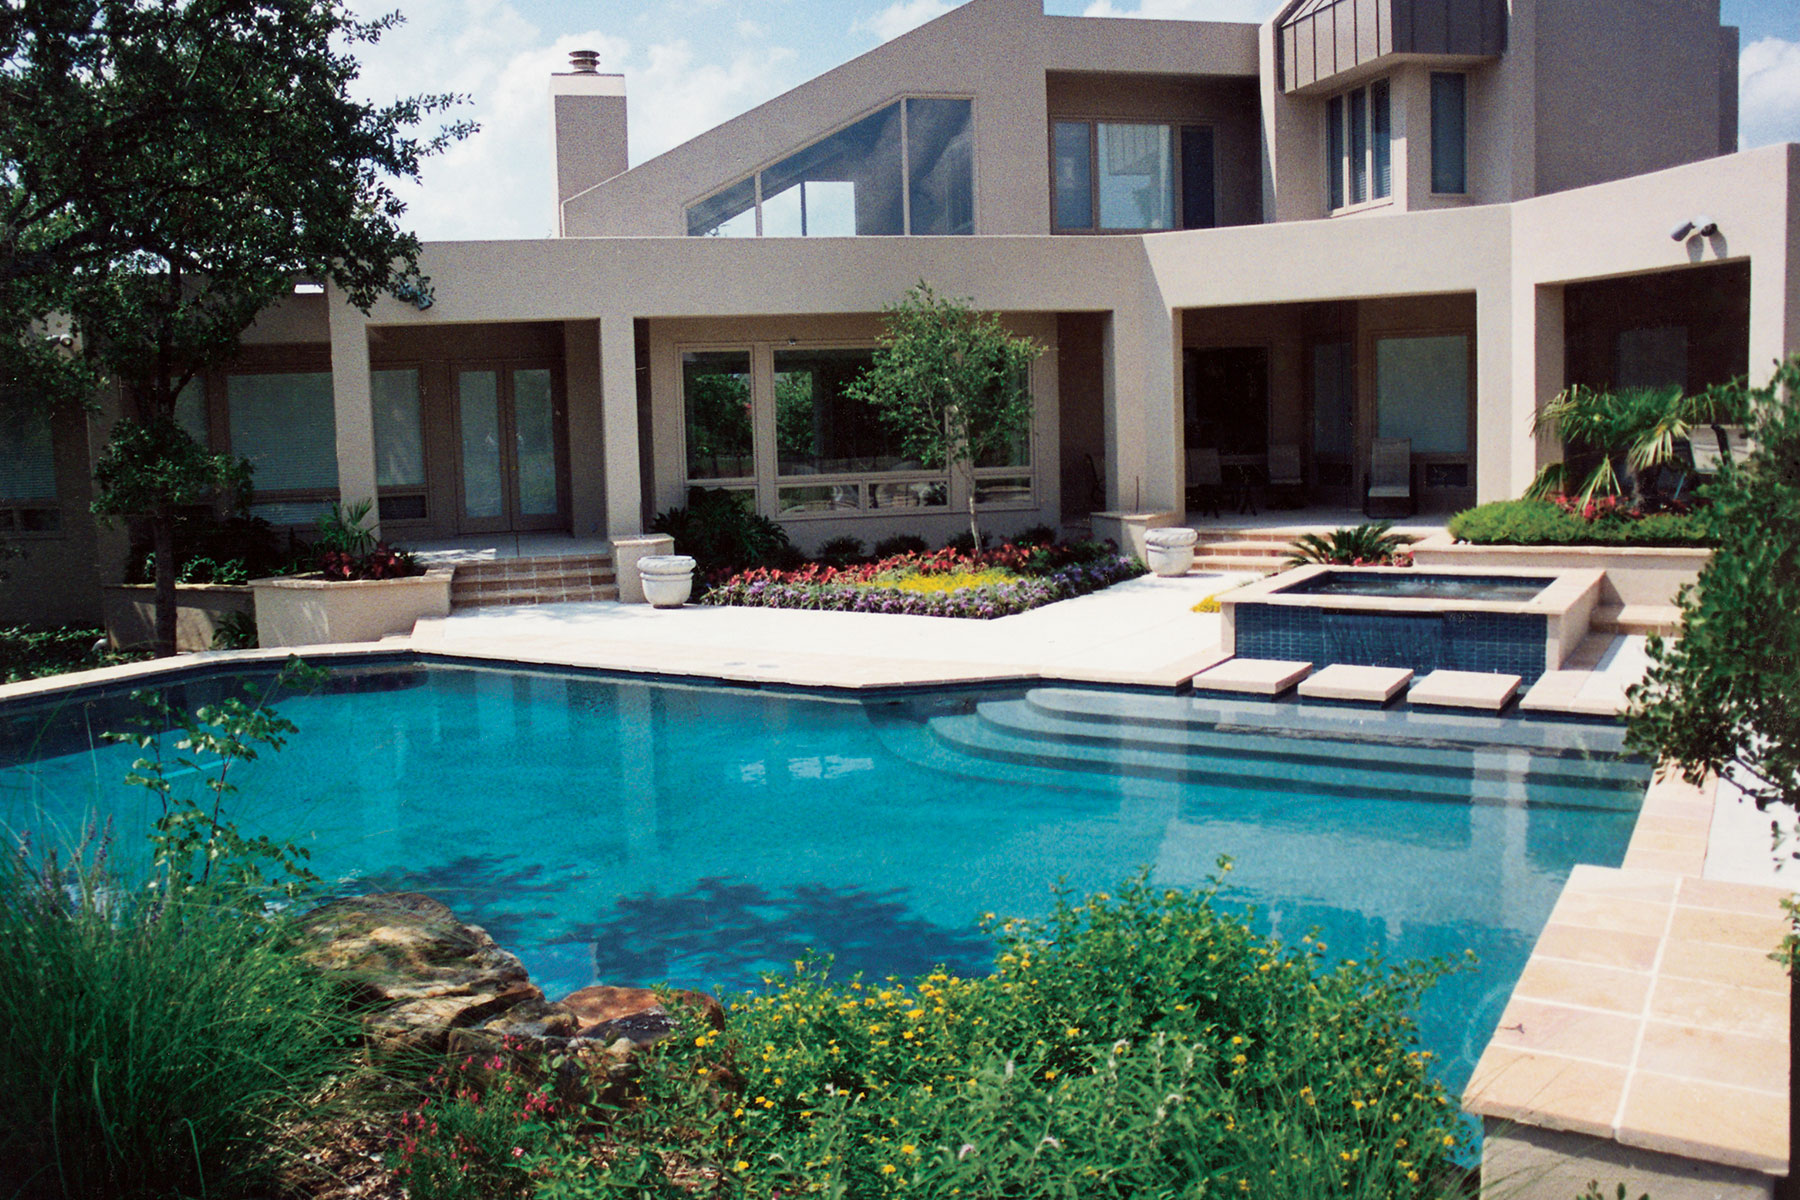 How much does a custom pool cost keith zars pools for Cost to build a house in texas